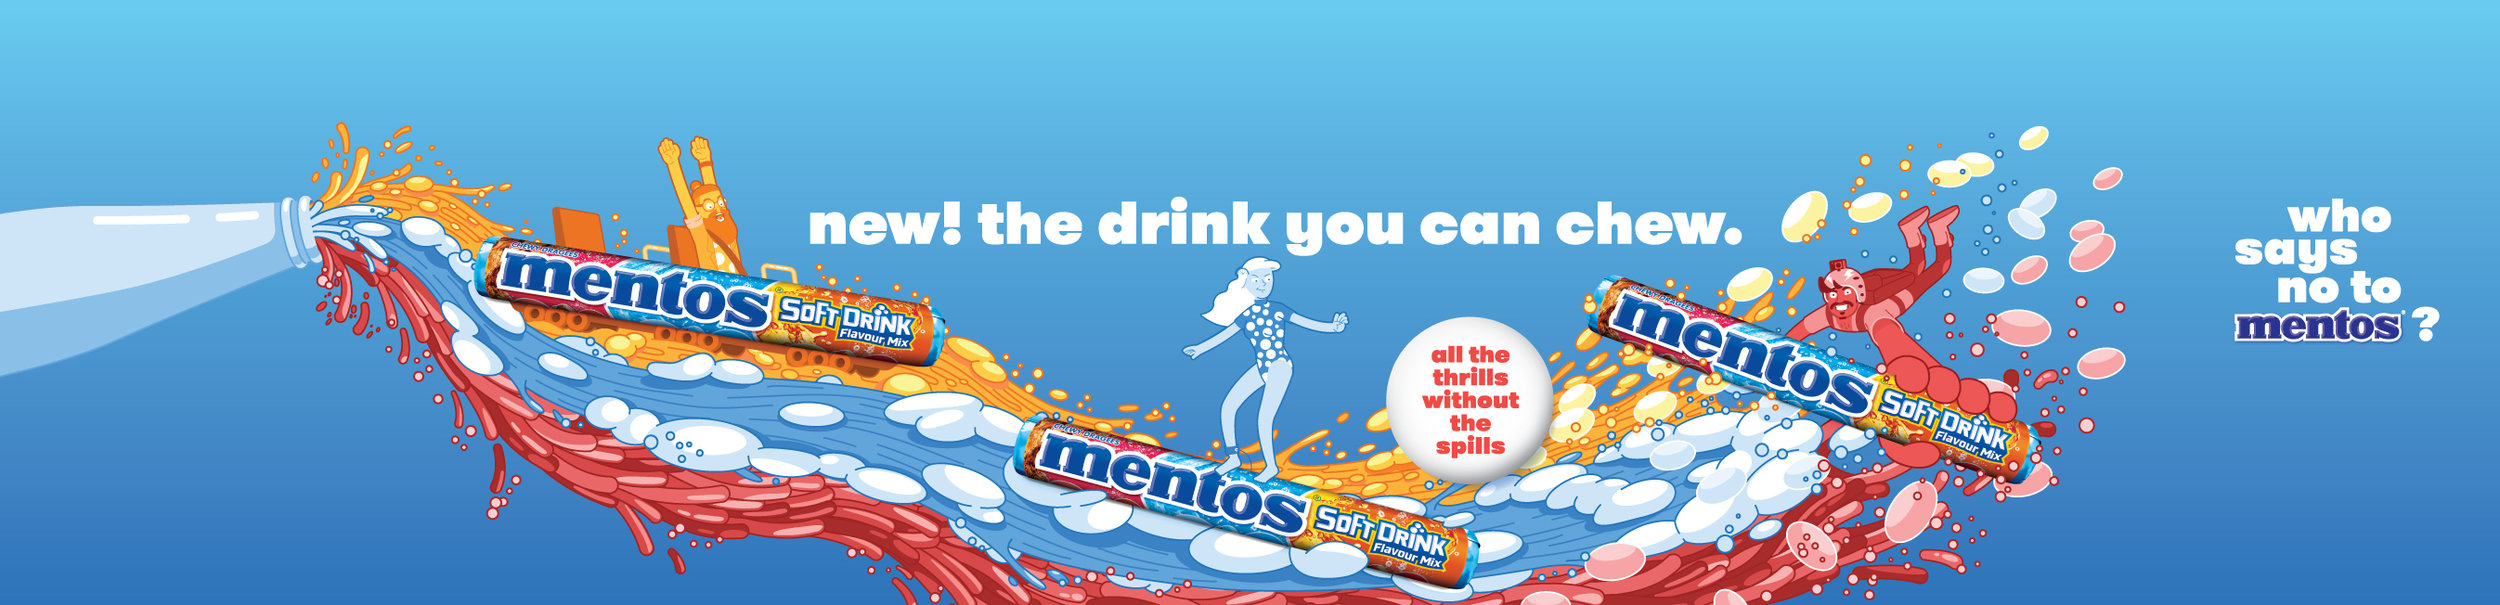 Mentos_OOH_Bus_V2_Mar26.jpg